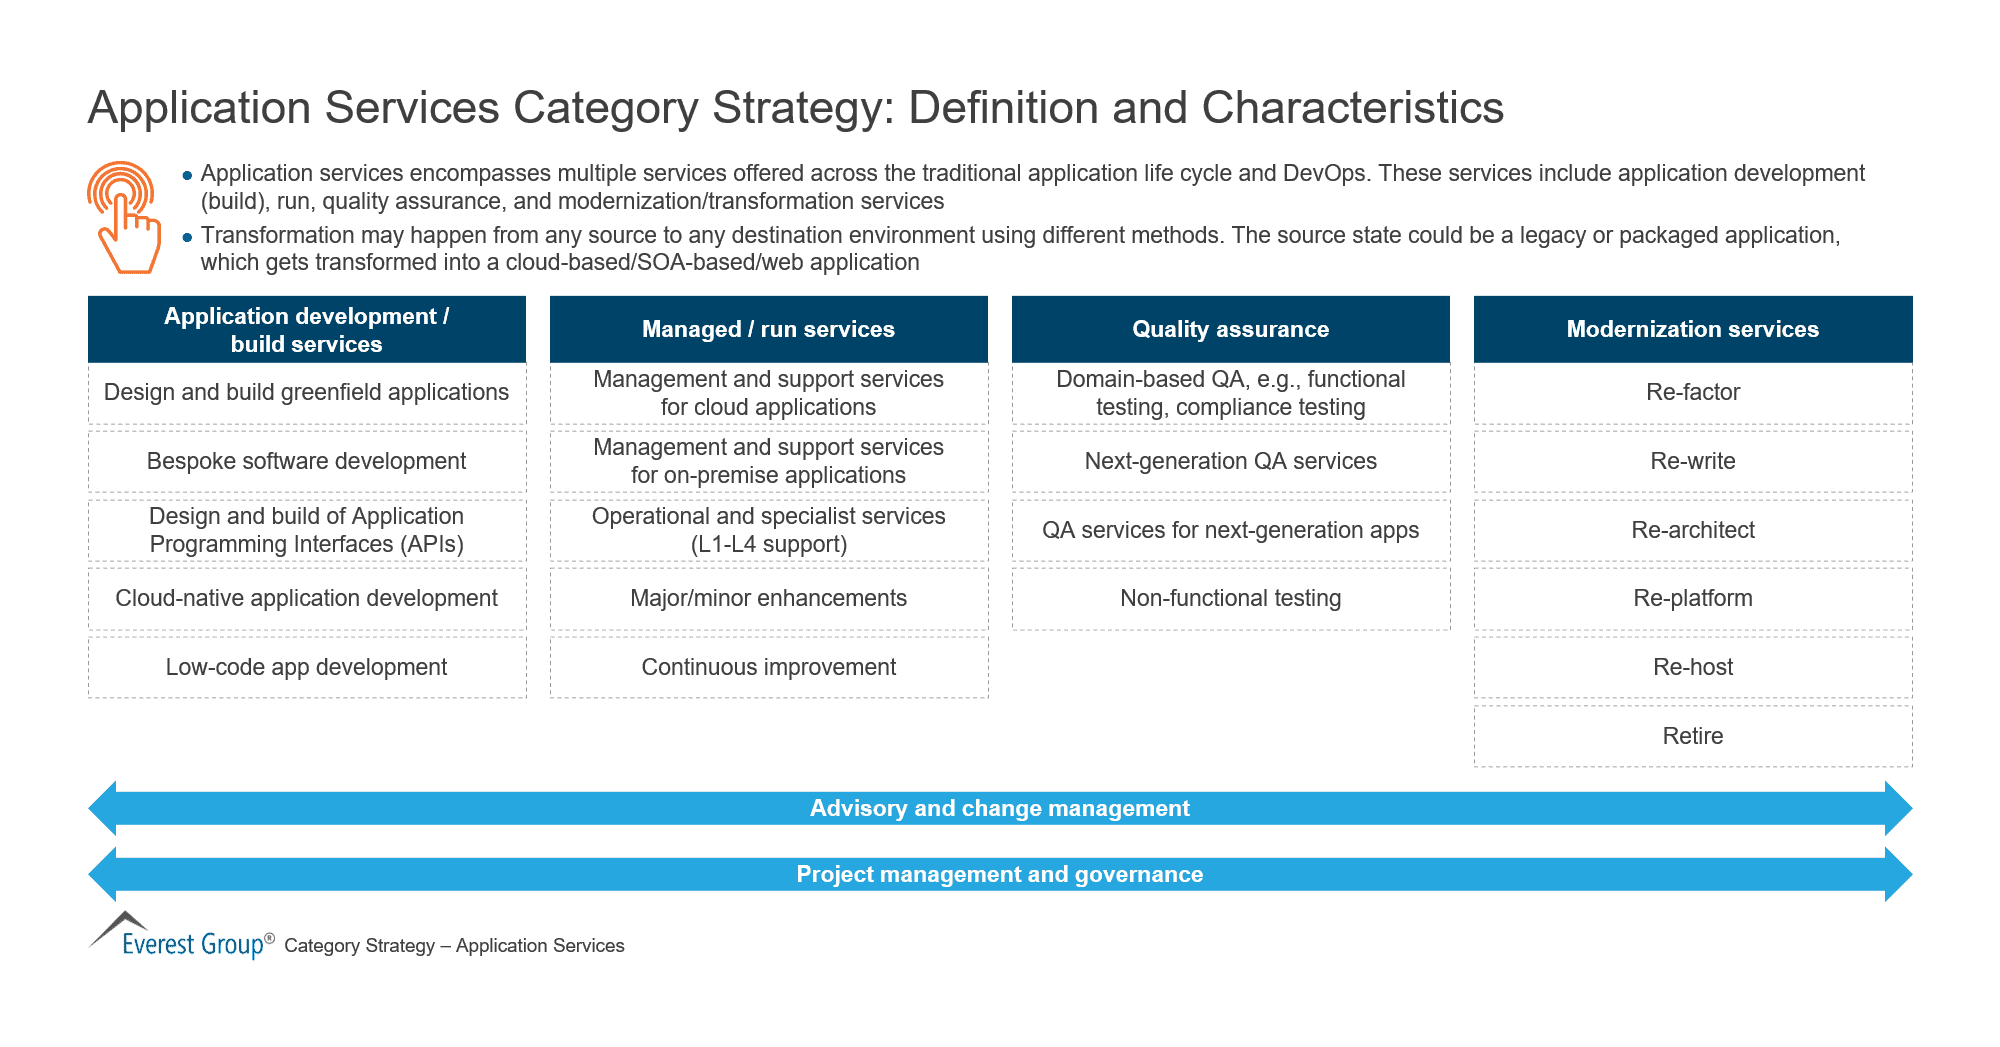 Application Services Category Strategy-Definition and Characteristics